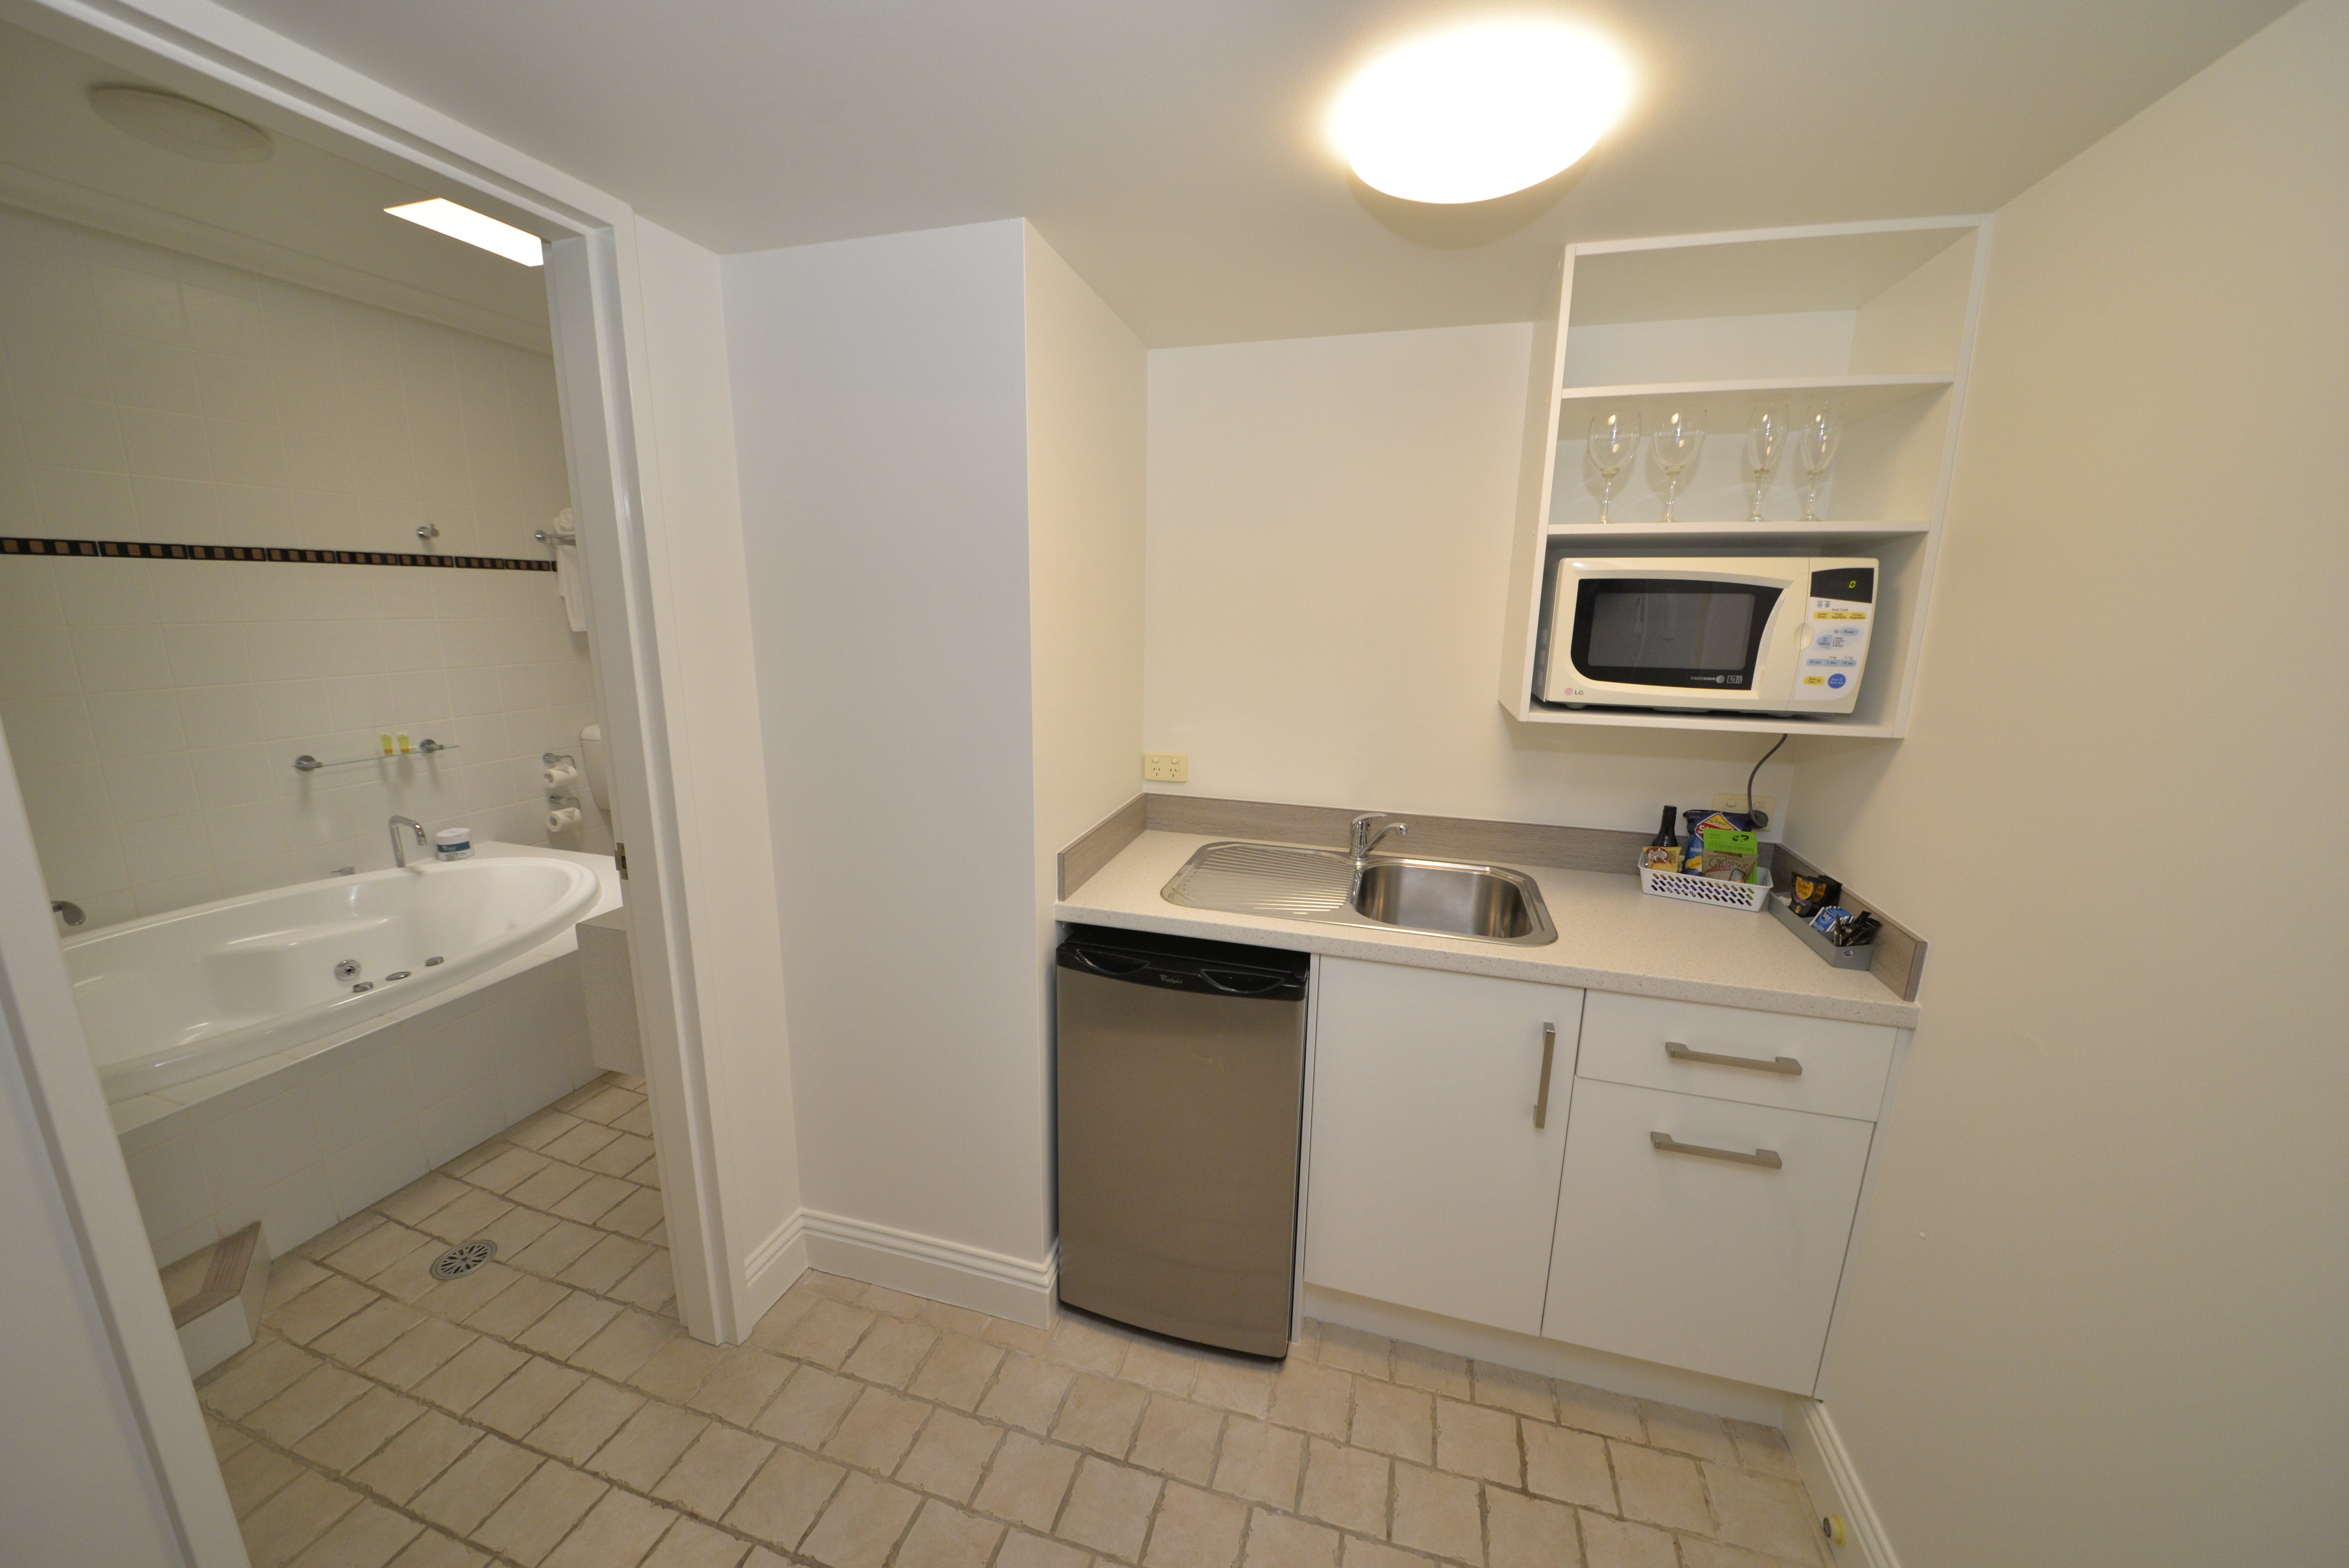 Kitchenette & Bathroom - Deluxe King Spa Room